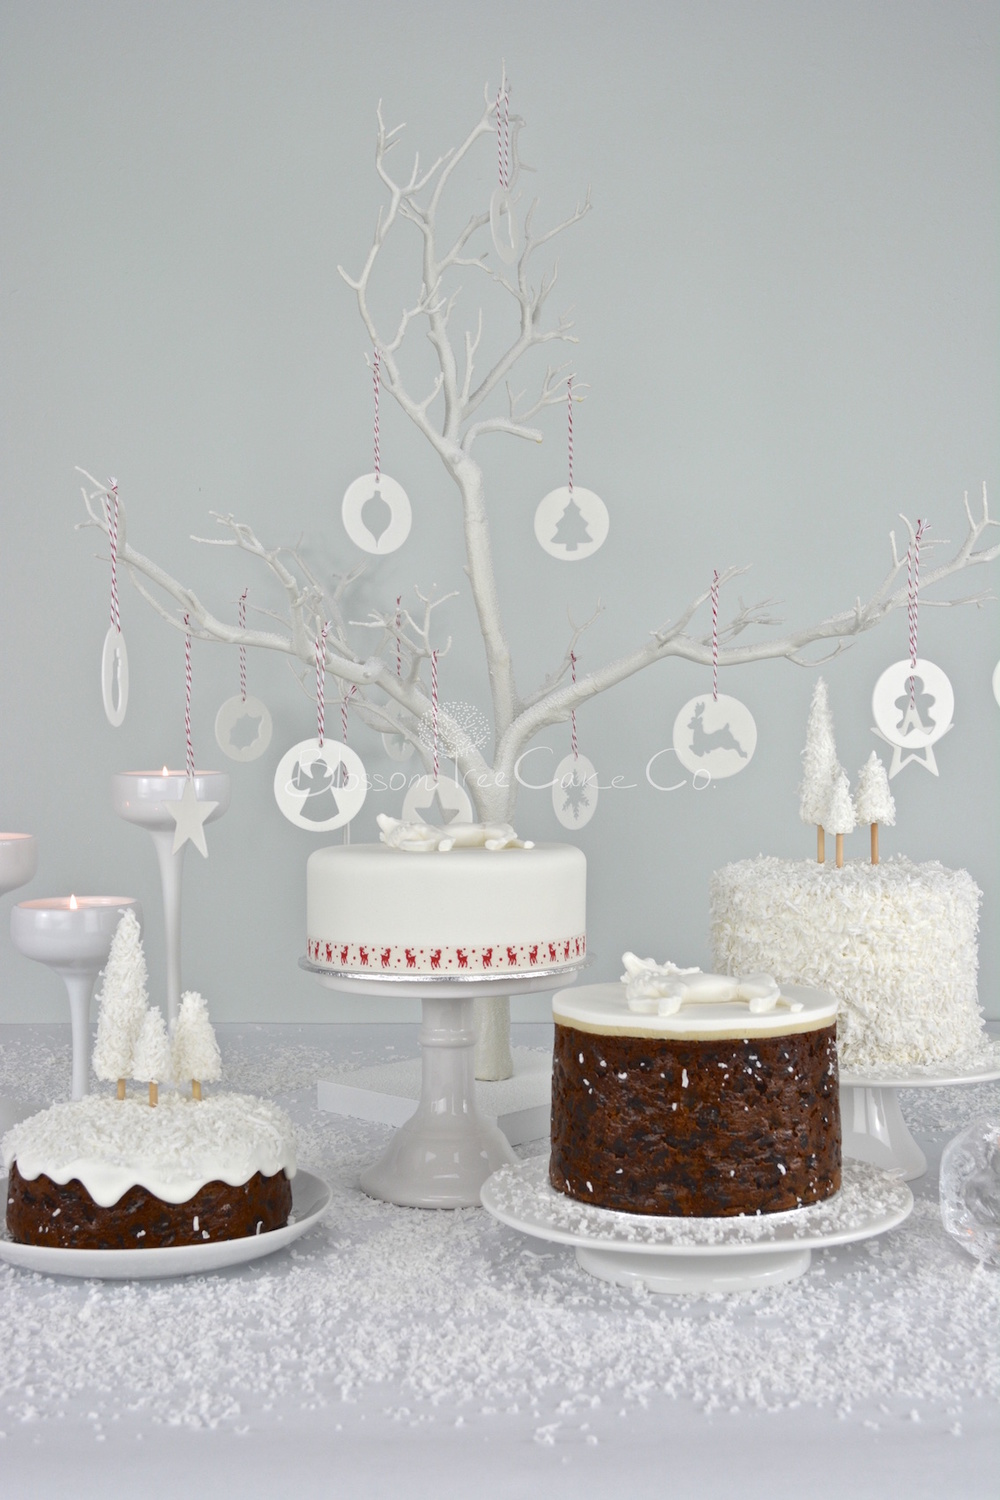 Christmas cakes by Blossom Tree Cake Co Harrogate North Yorkshire.jpg